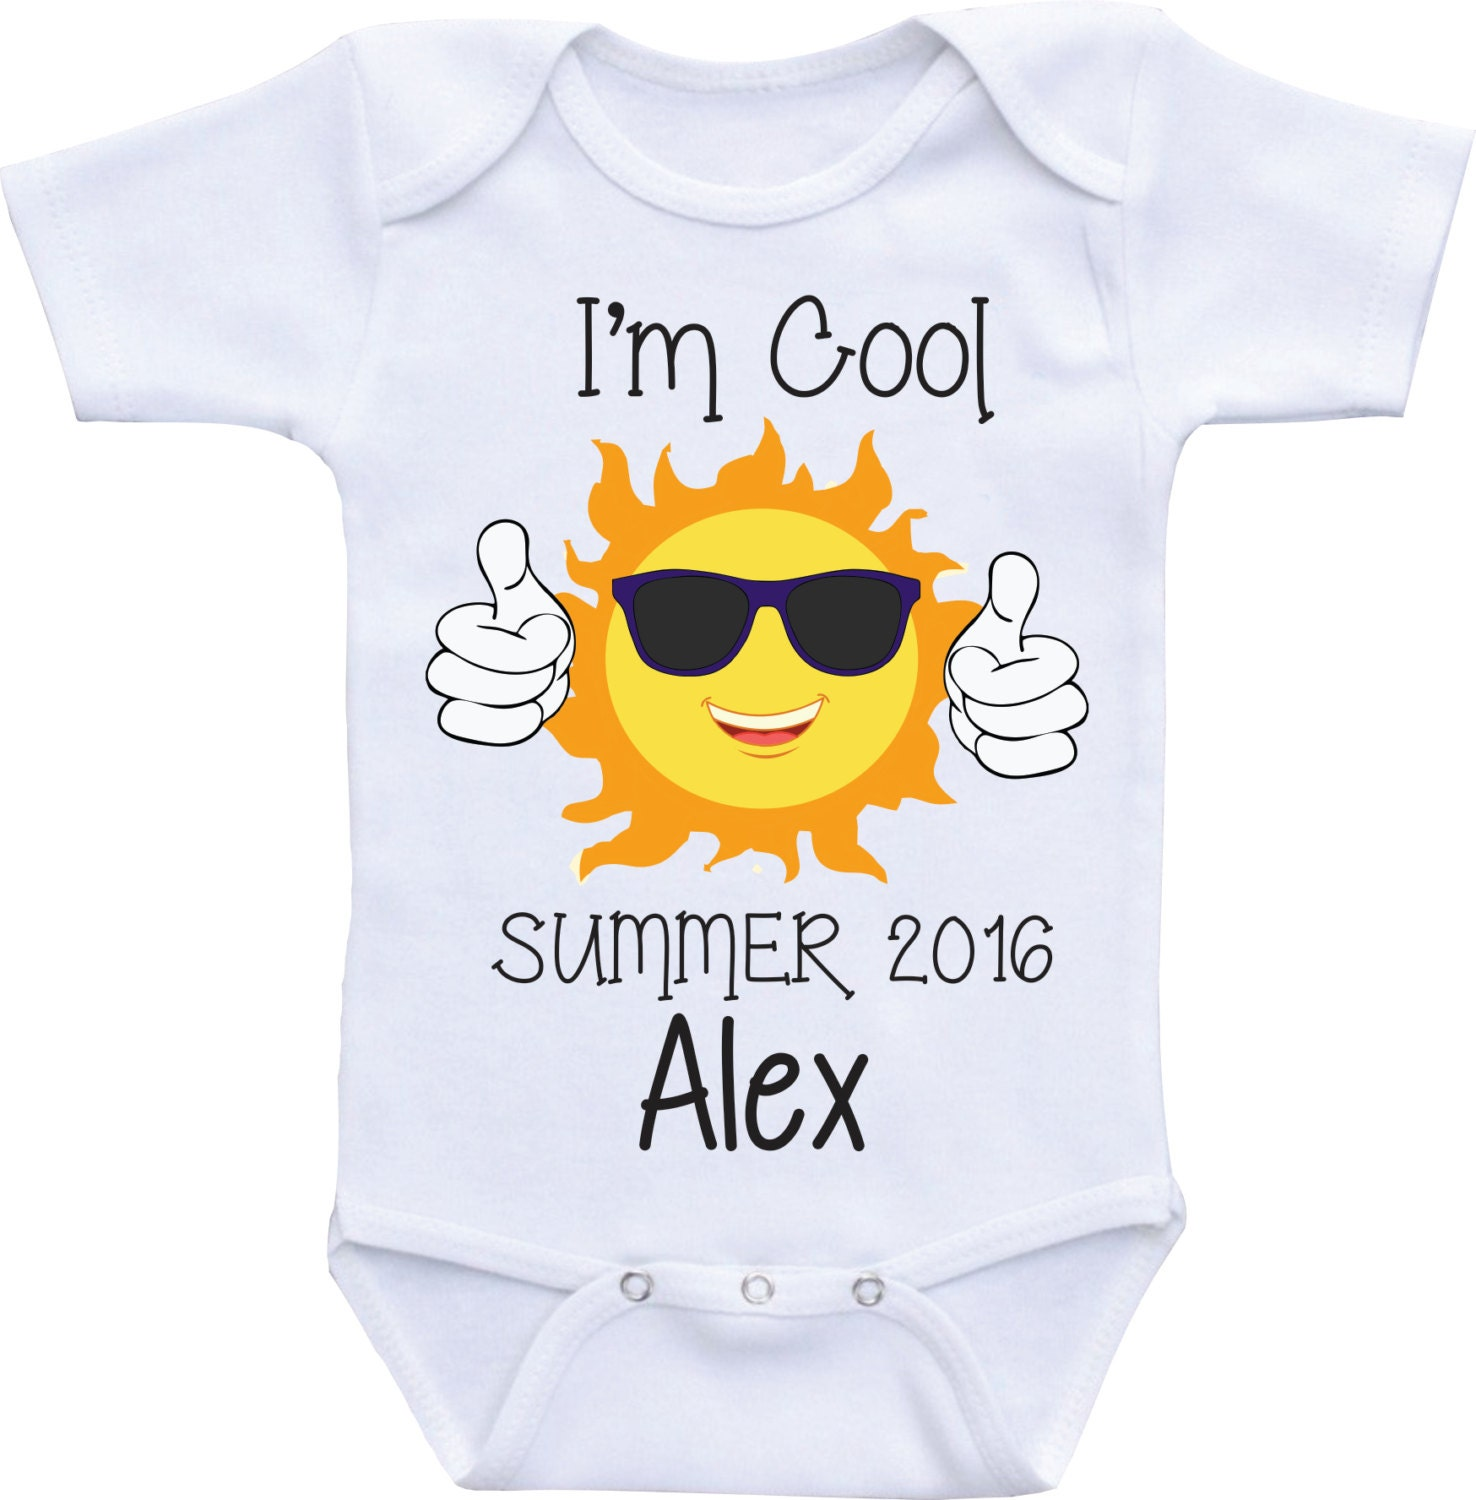 Personalized baby gifts for boys personalized onsies baby girl